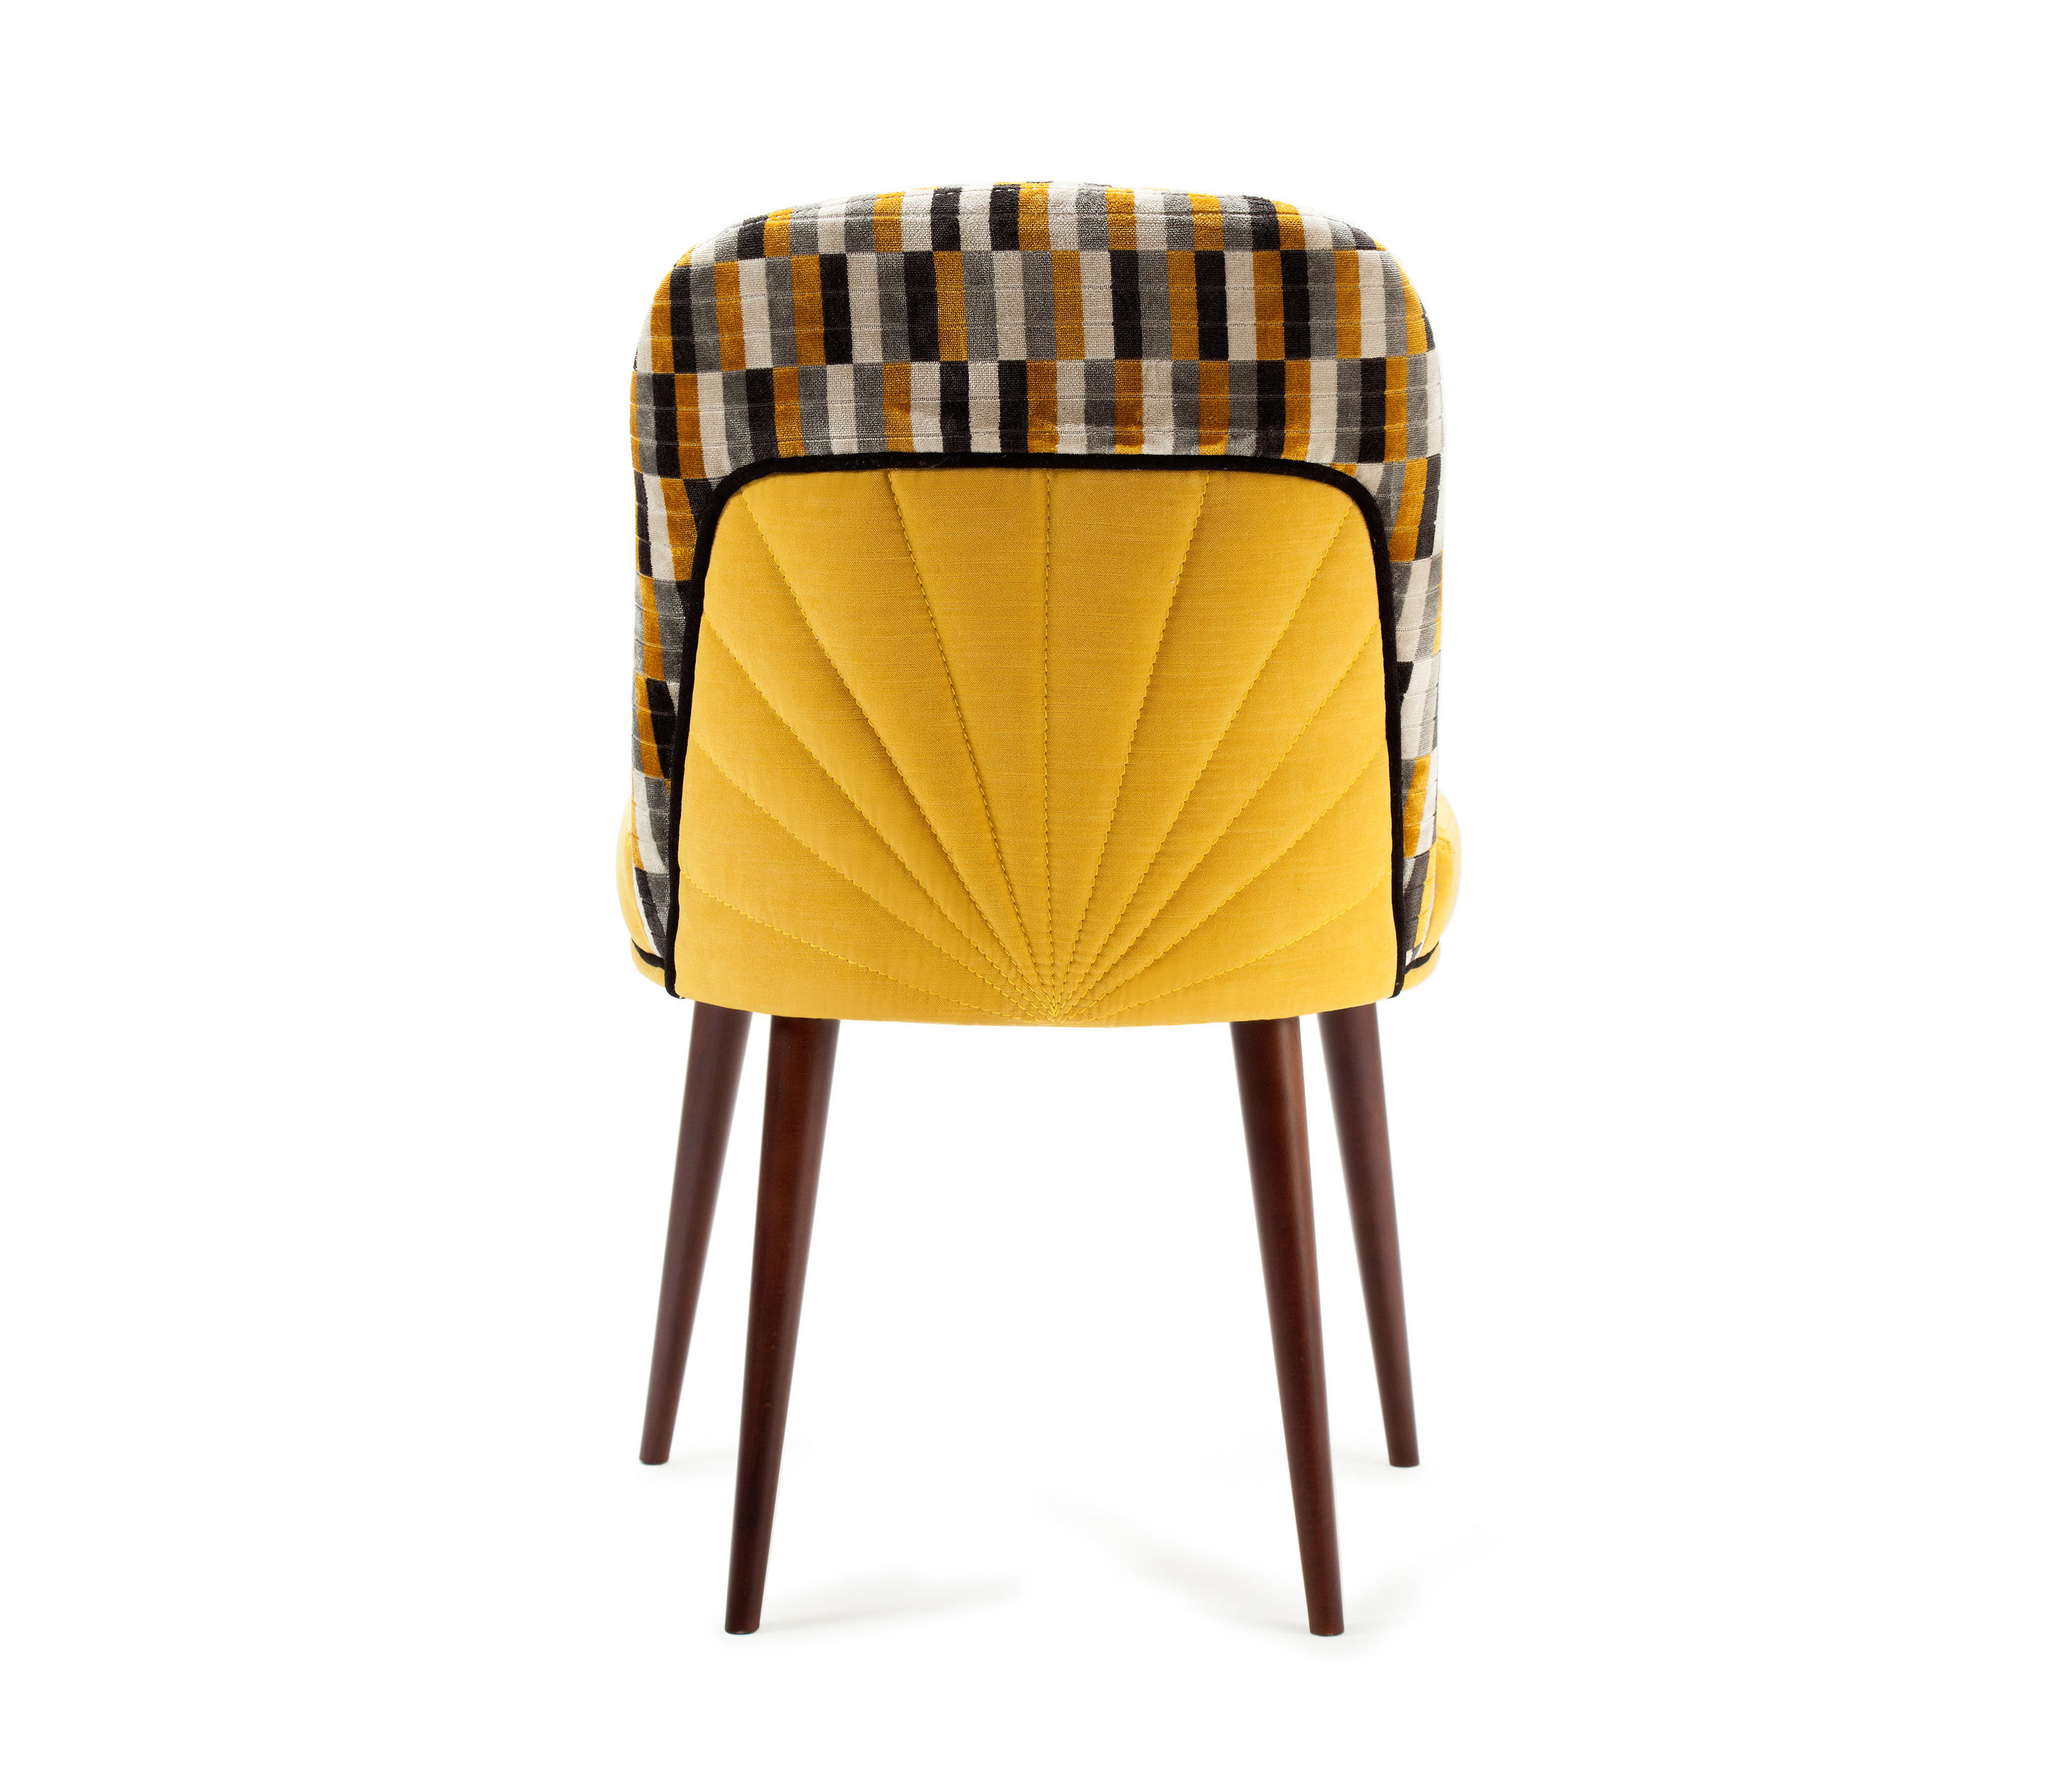 frida chair chairs from mambo unlimited ideas architonic. Black Bedroom Furniture Sets. Home Design Ideas